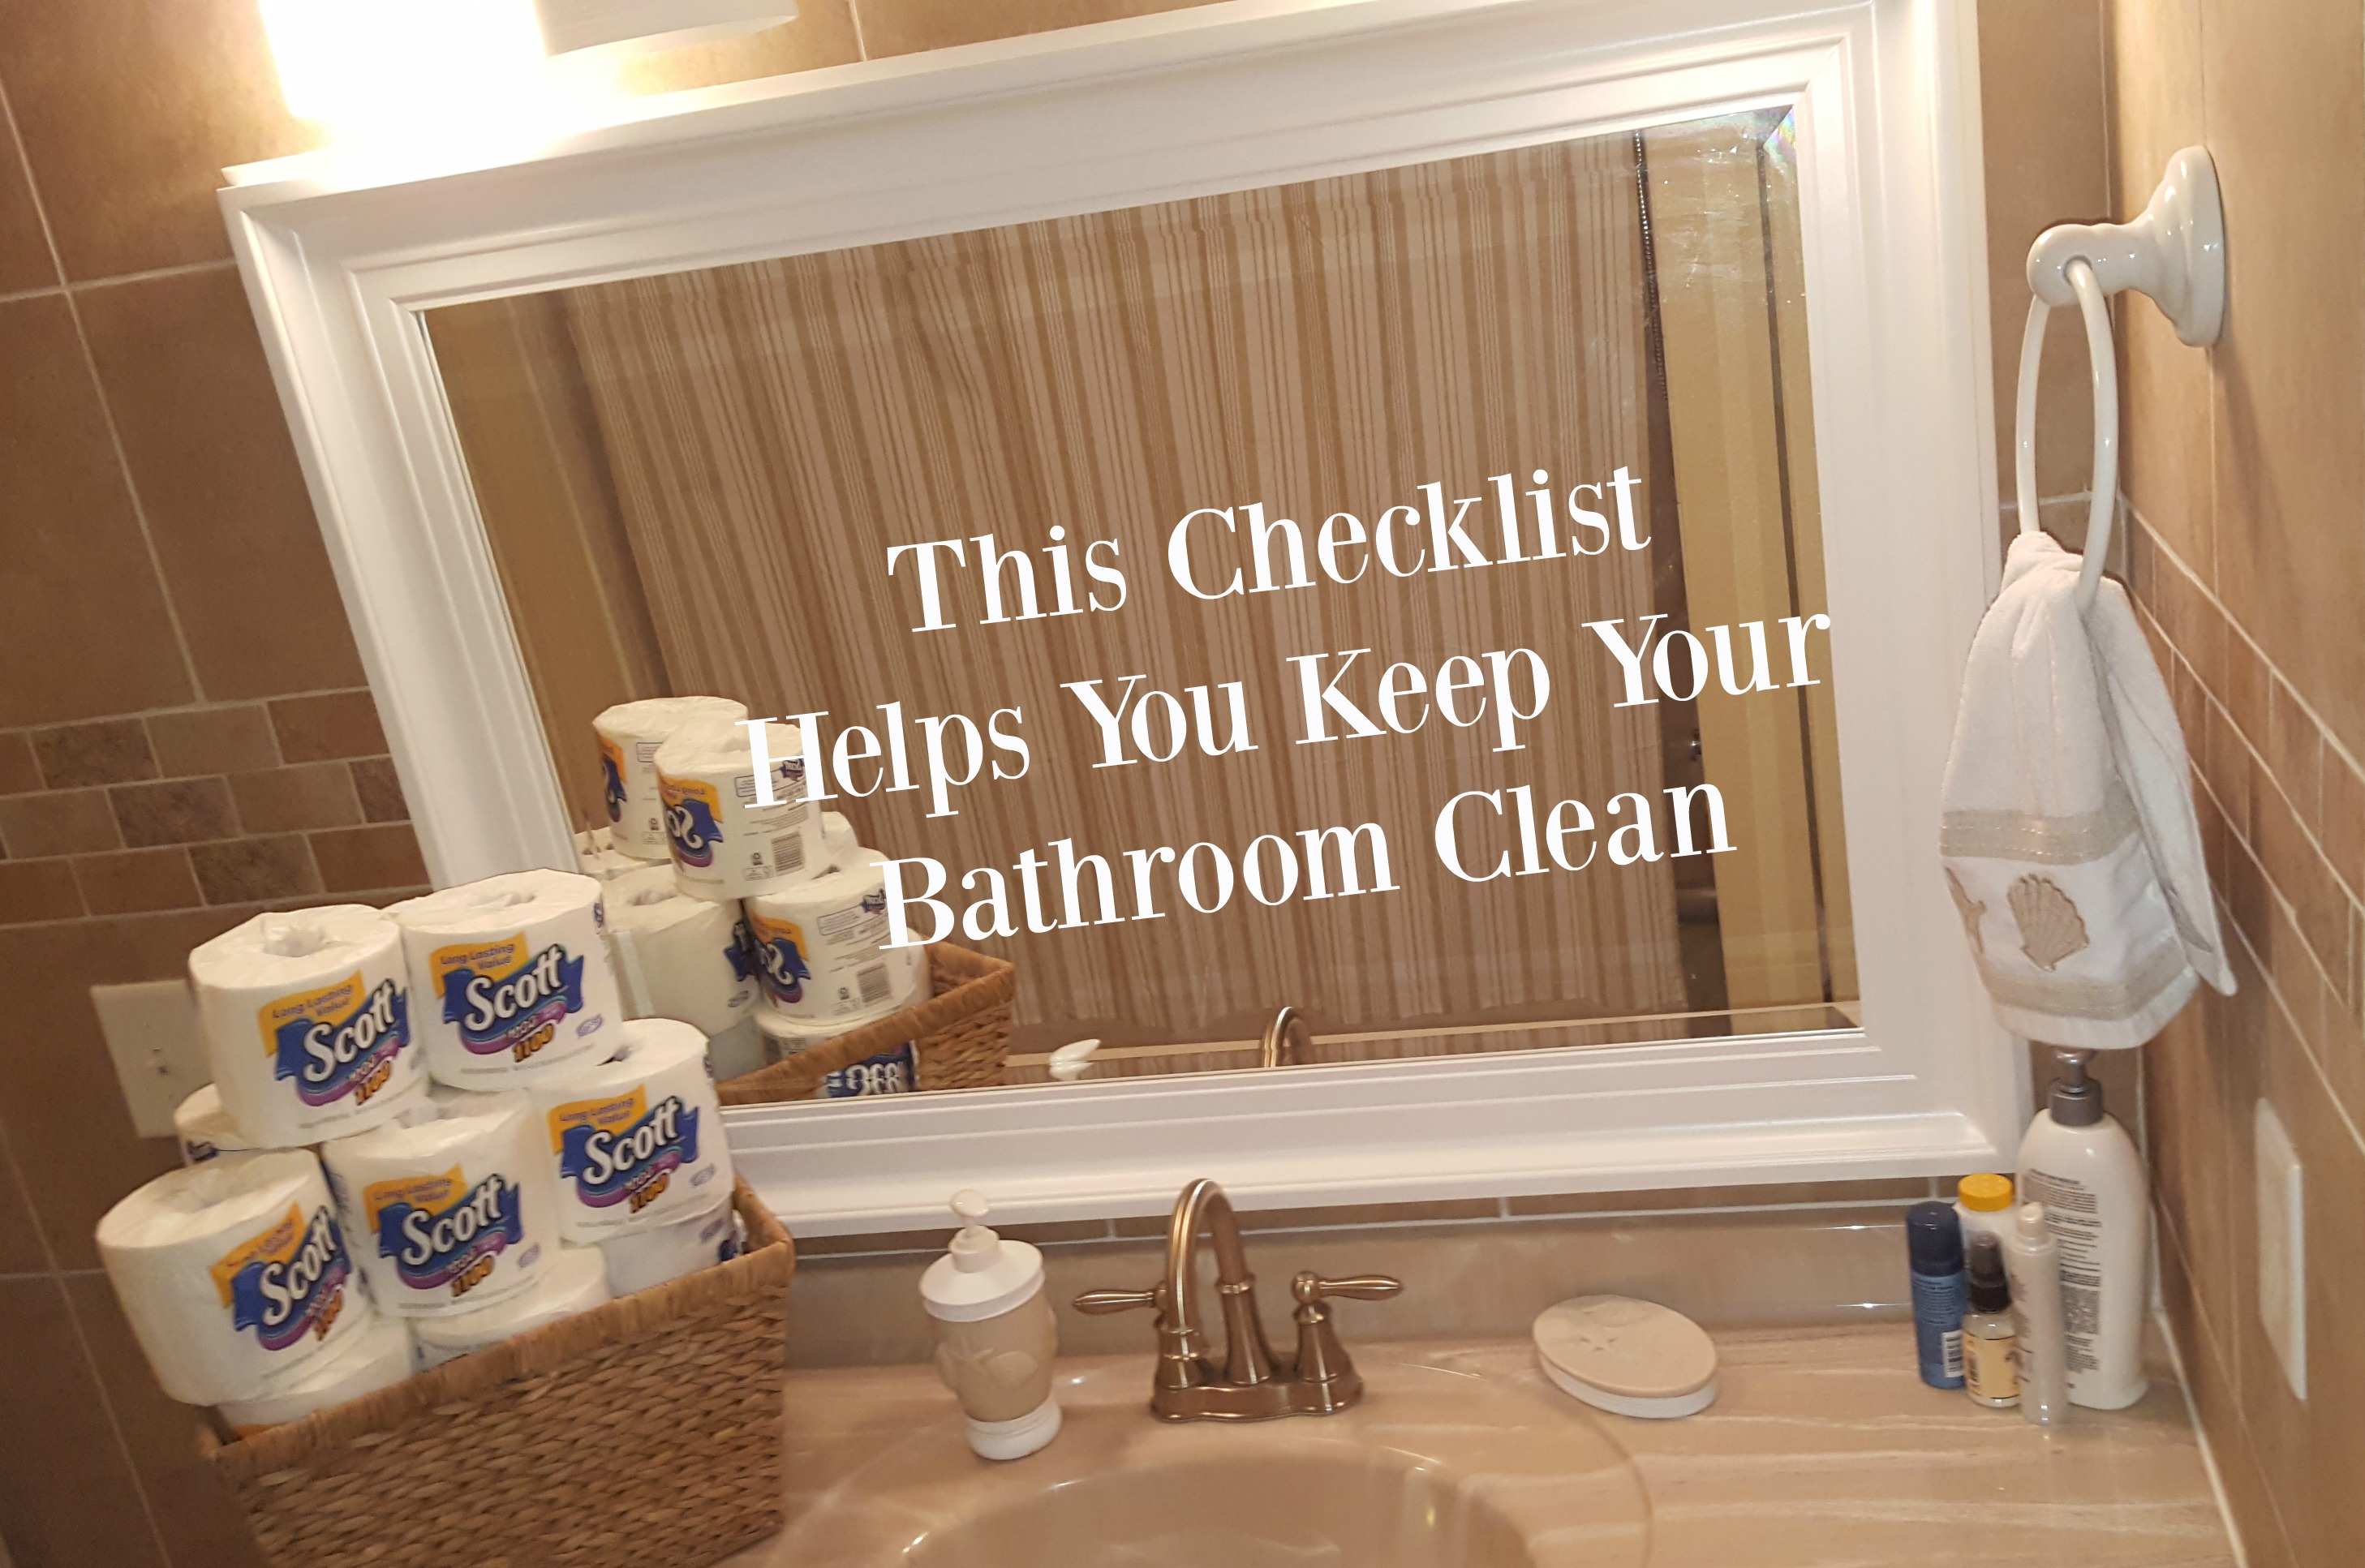 this checklist helps you keep your bathroom clean